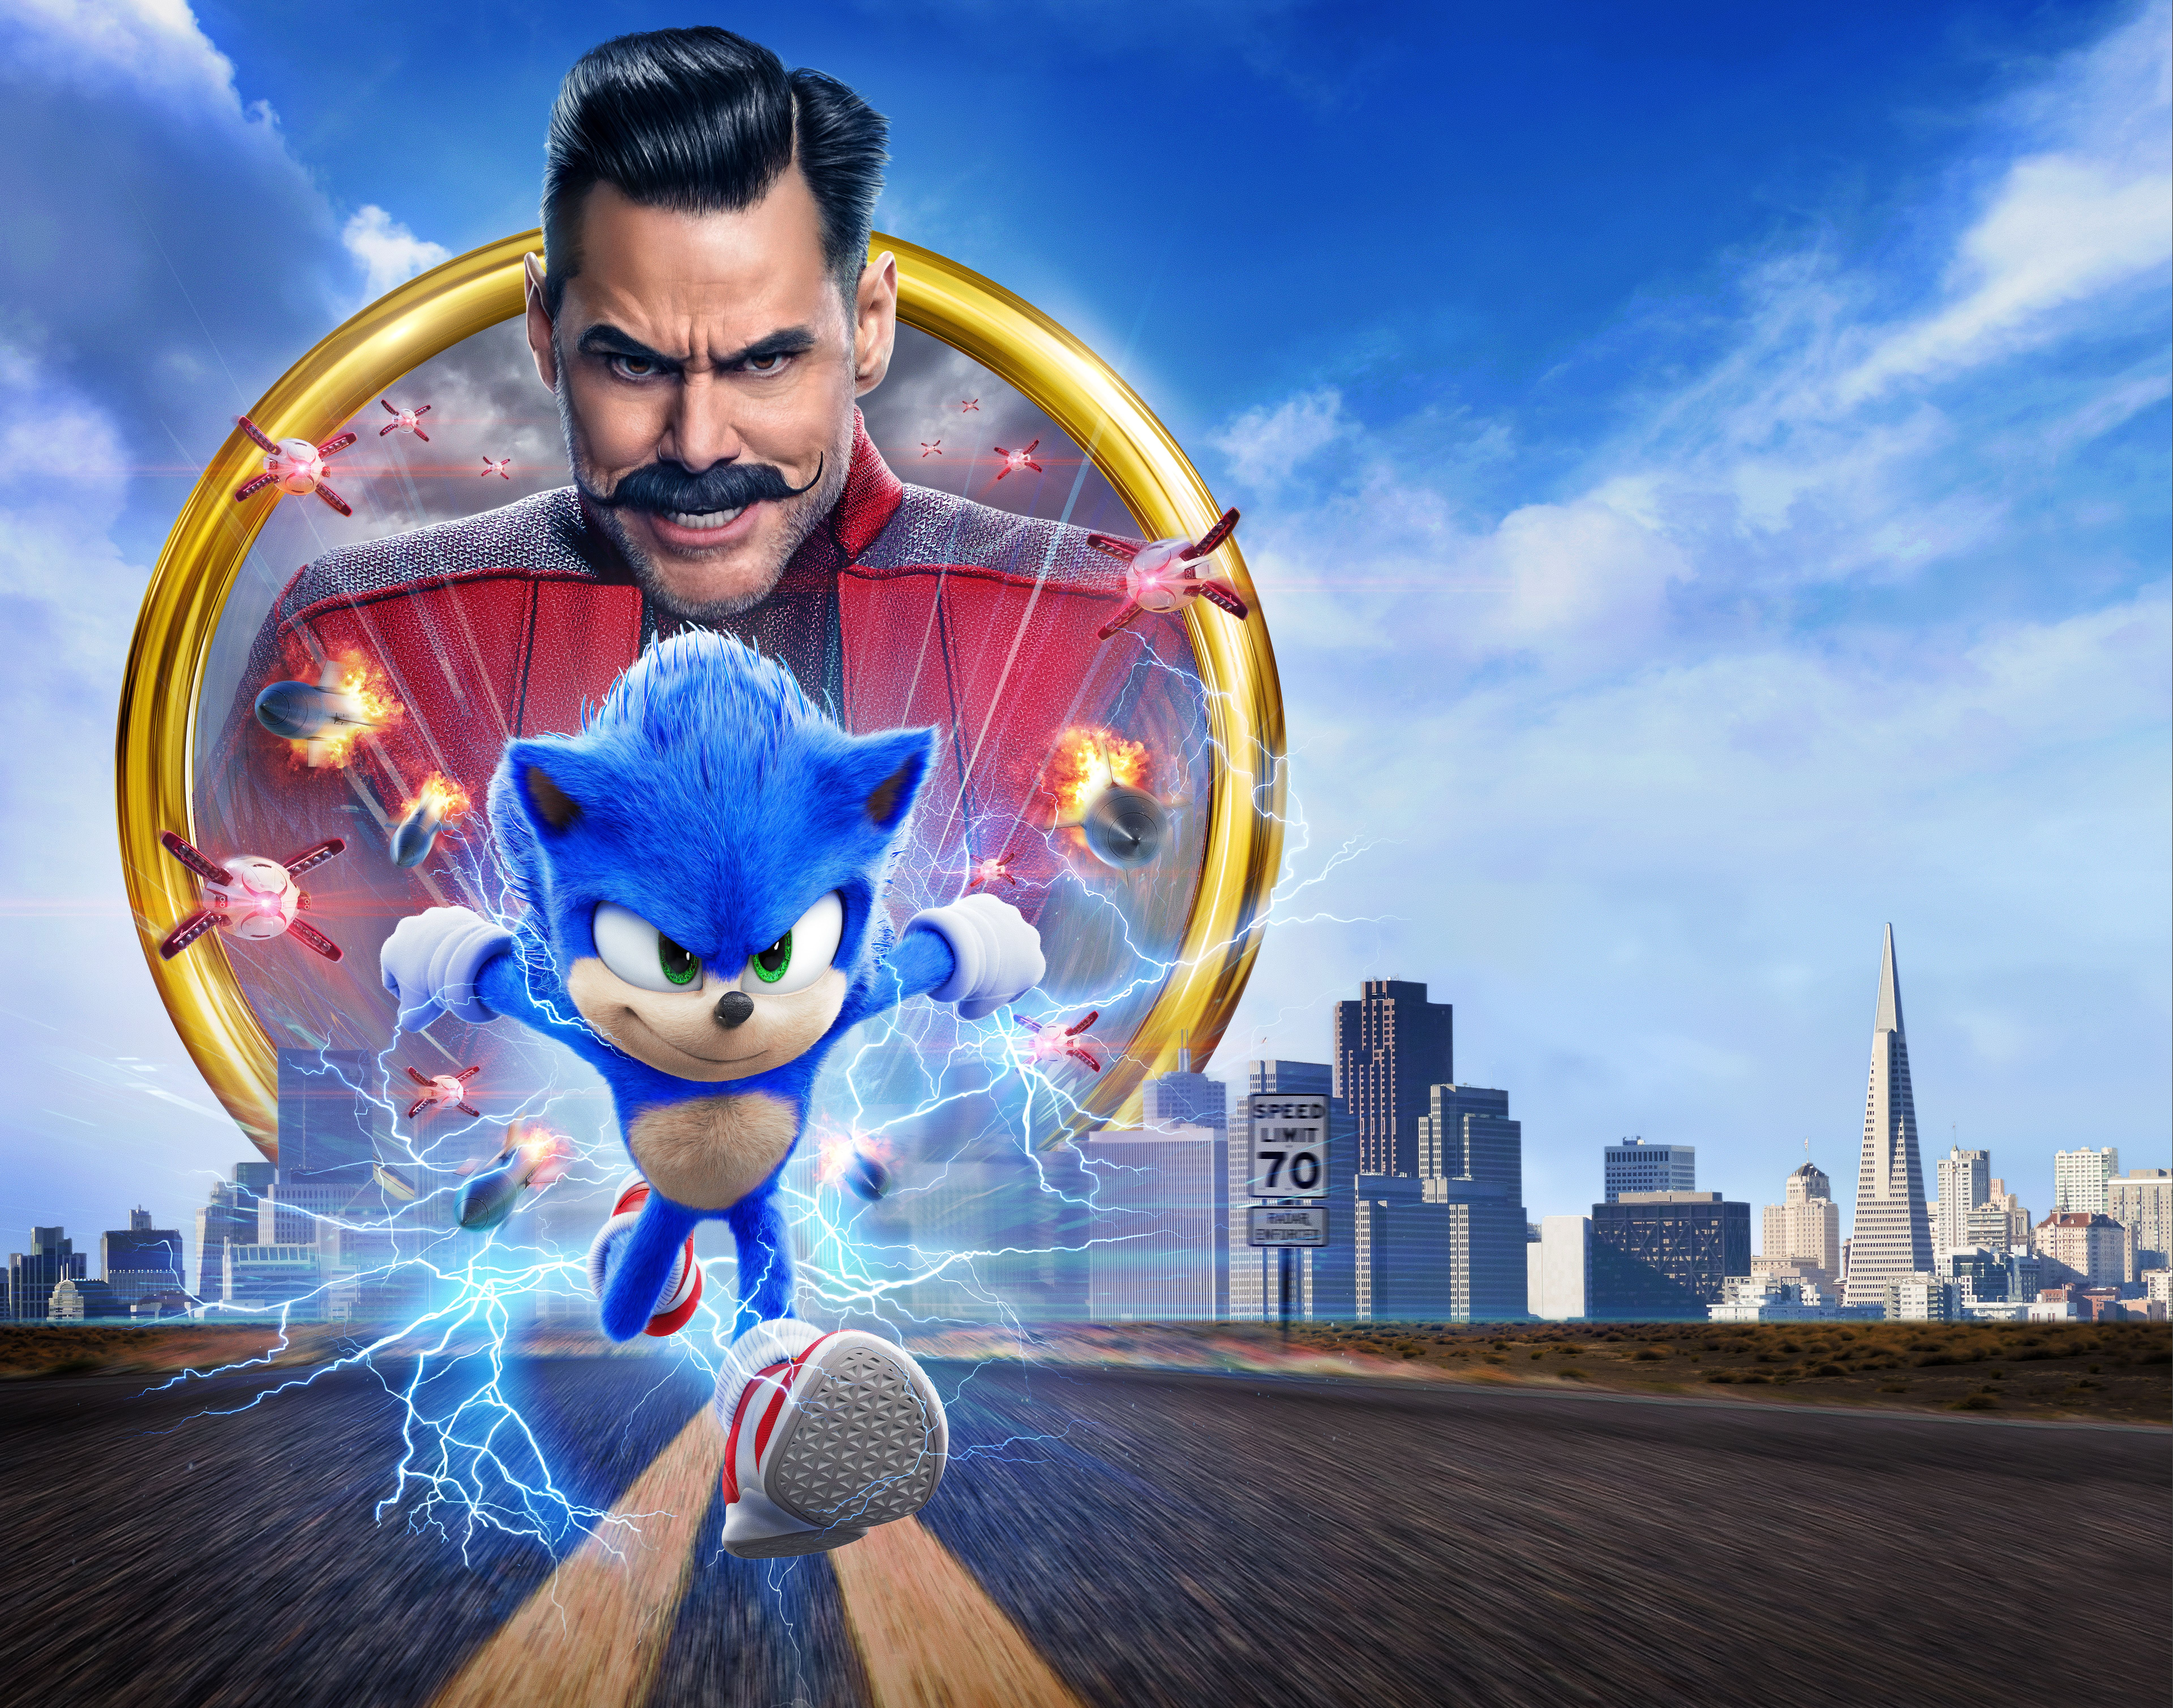 Sonic The Hedgehog Movie Sonic Wallpapers Sonic The Hedgehog Movie 4k Wallpapers Sonic Movie Wallpapers 202 In 2020 Hedgehog Movie Sonic The Hedgehog Sonic The Movie